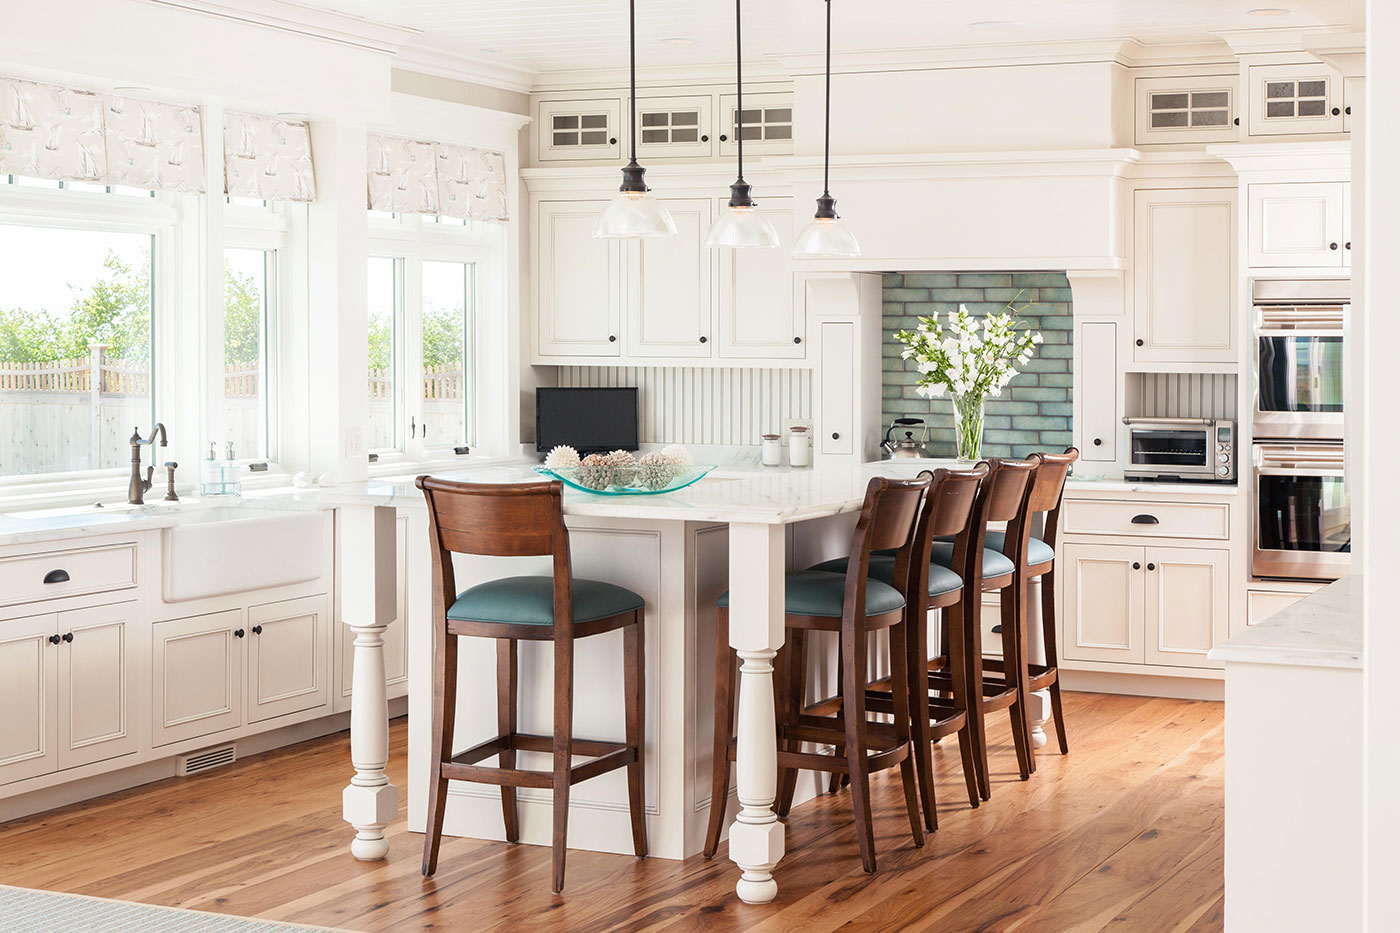 Custom coastal kitchen design by Surroundings Custom Interiors